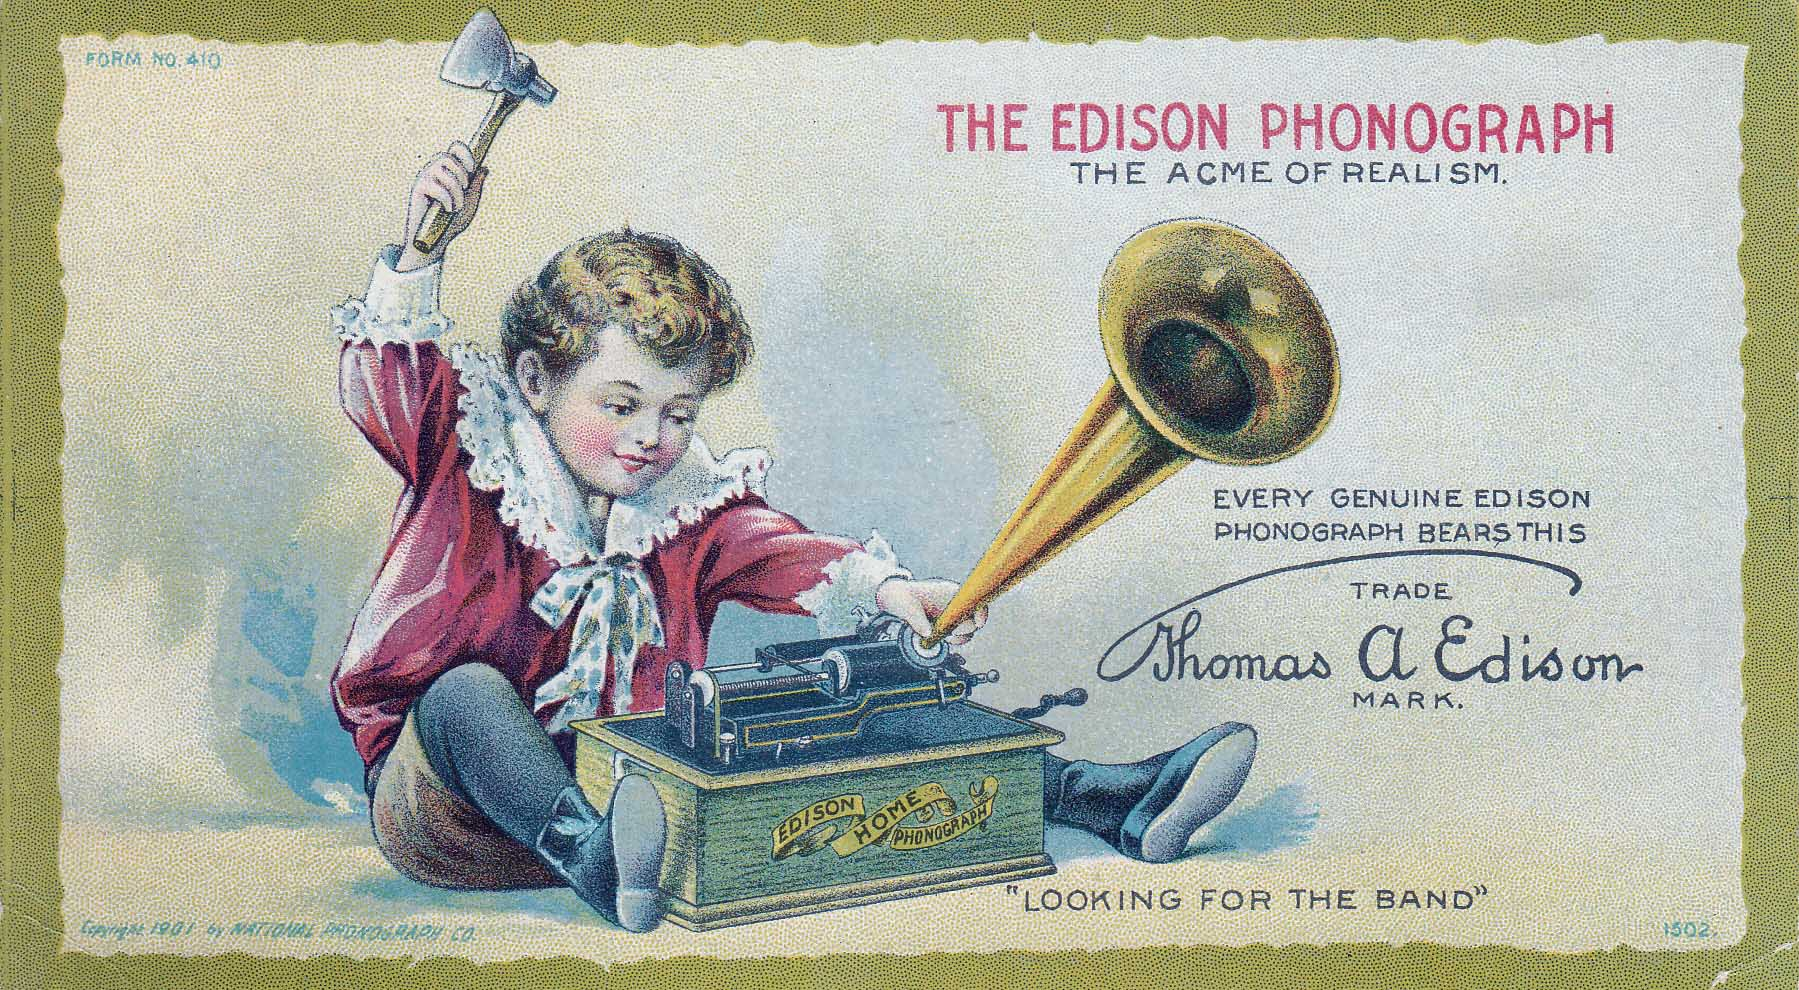 Edison Phonograph Advertisement, 1901